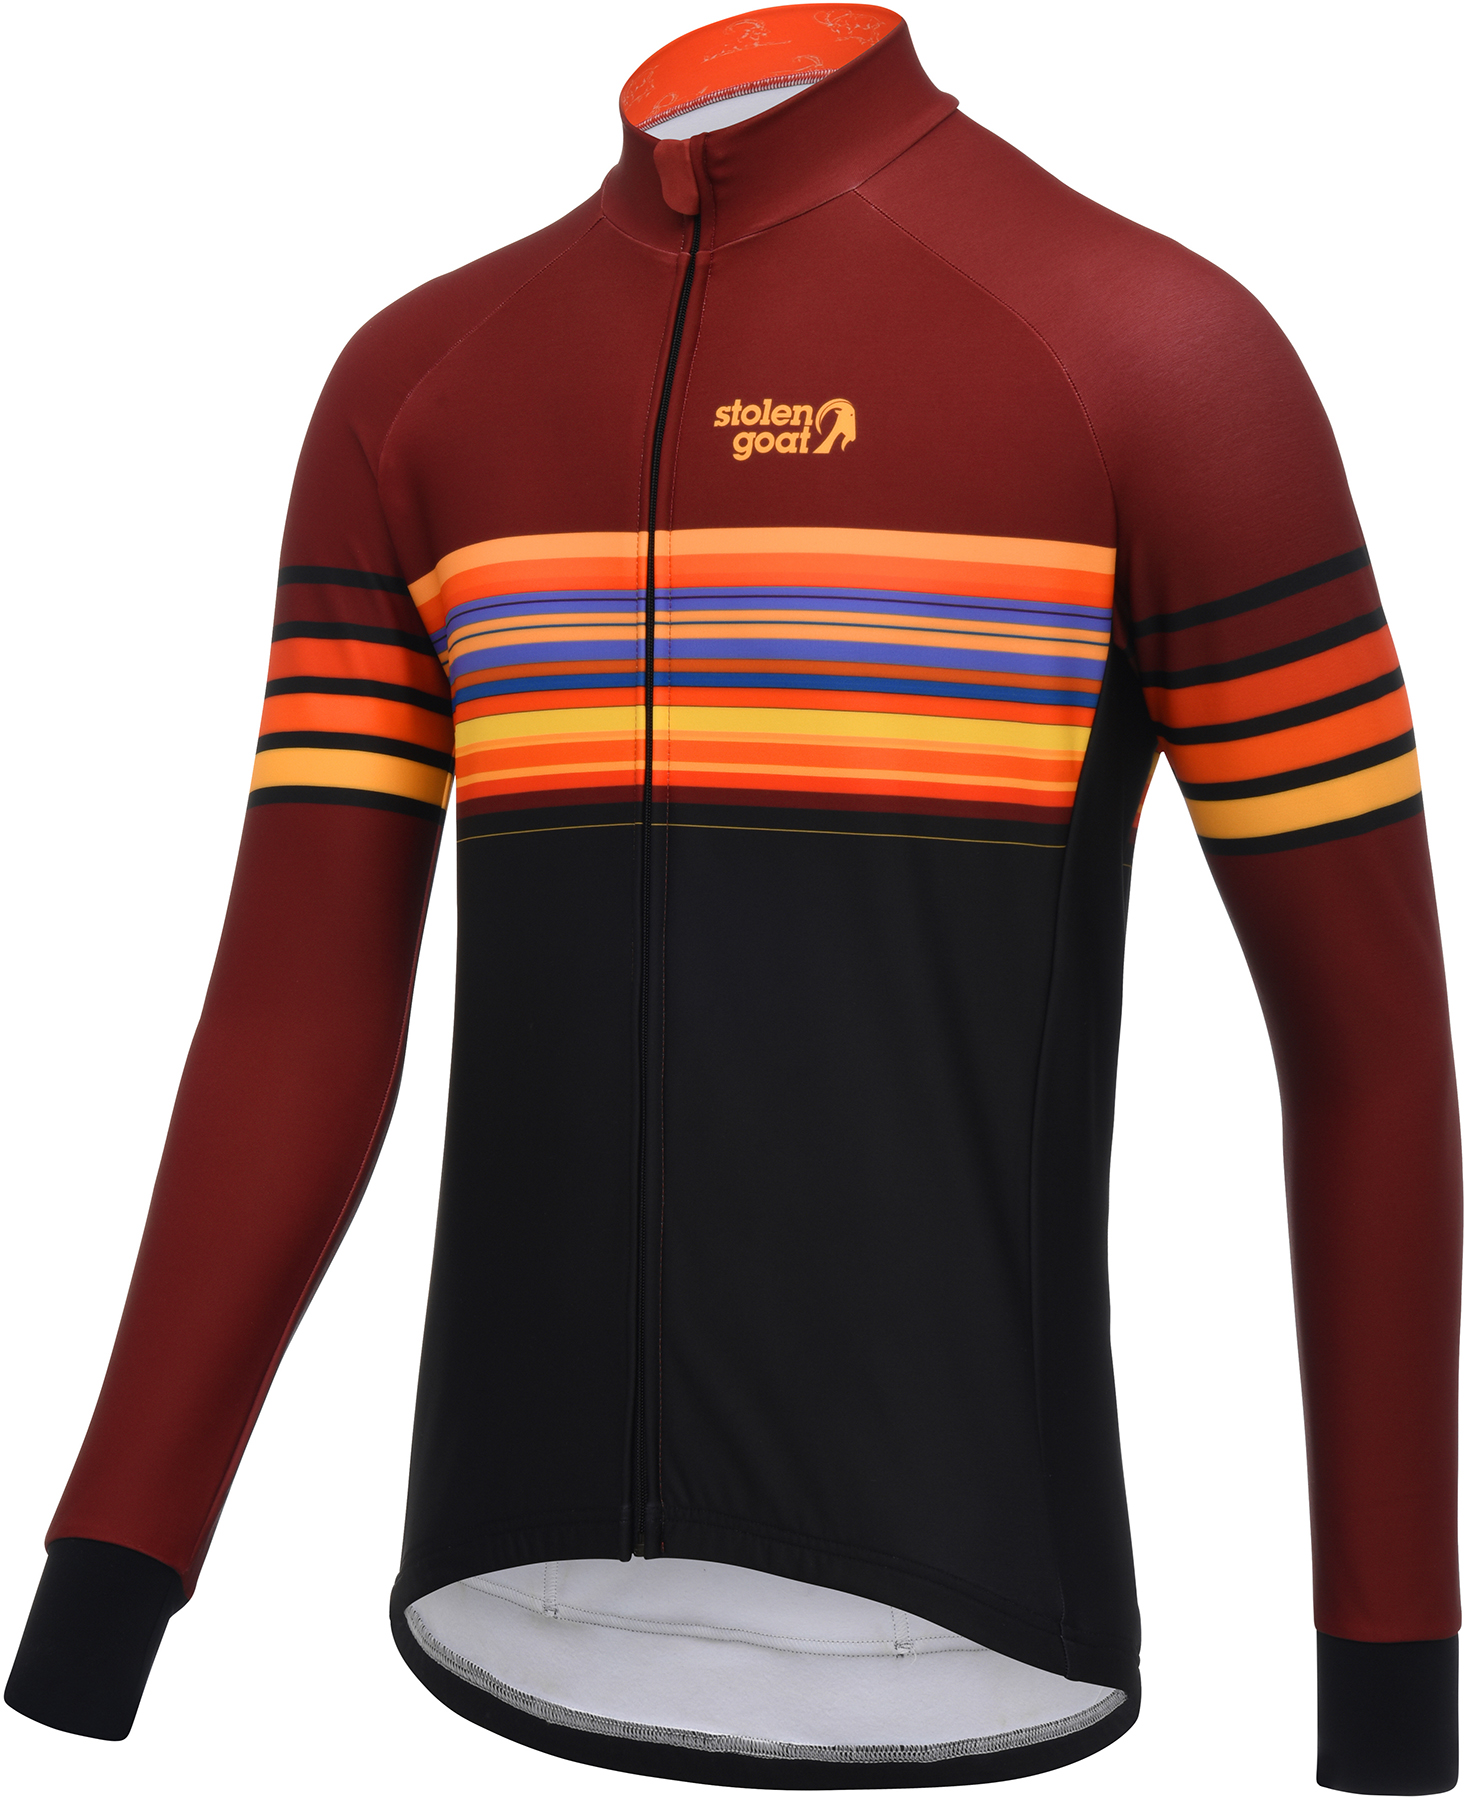 Stolen Goat Orkaan Sundawn Long Sleeve Jersey | Jerseys